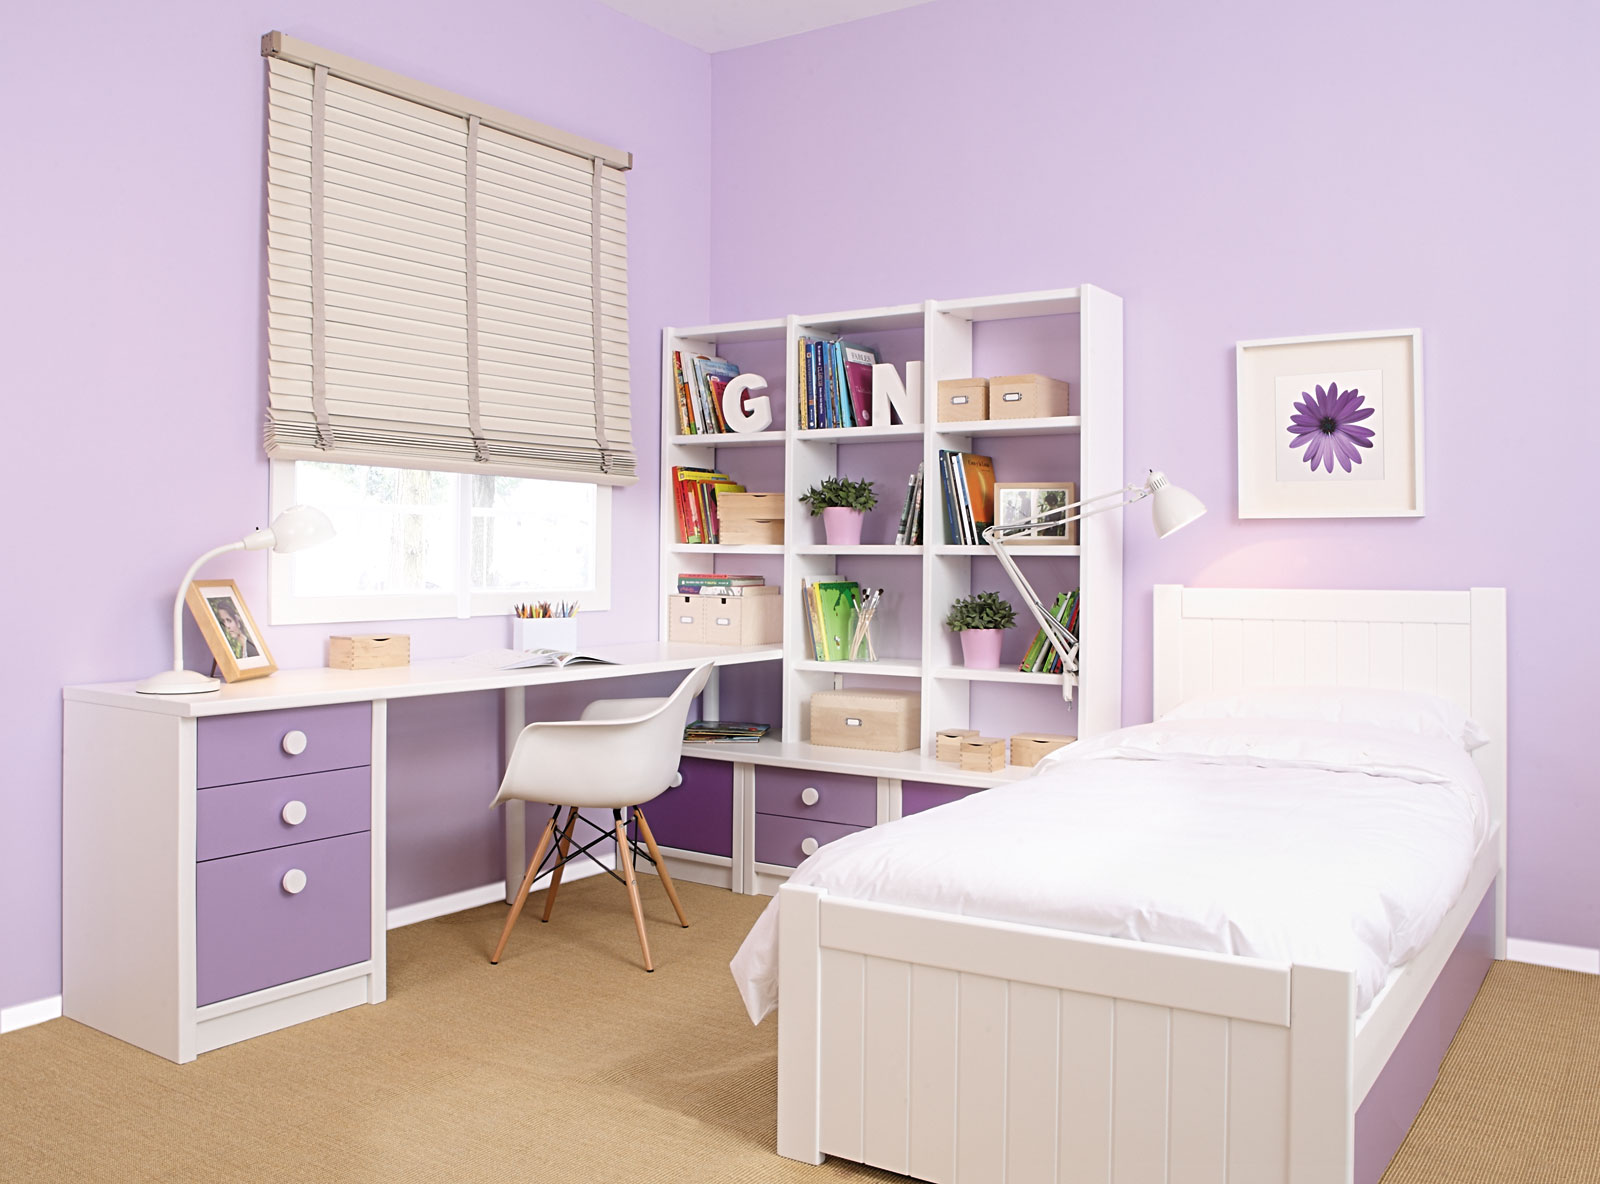 Decoracion Juveniles Modernas. Latest Fotos De Decoracin De ...